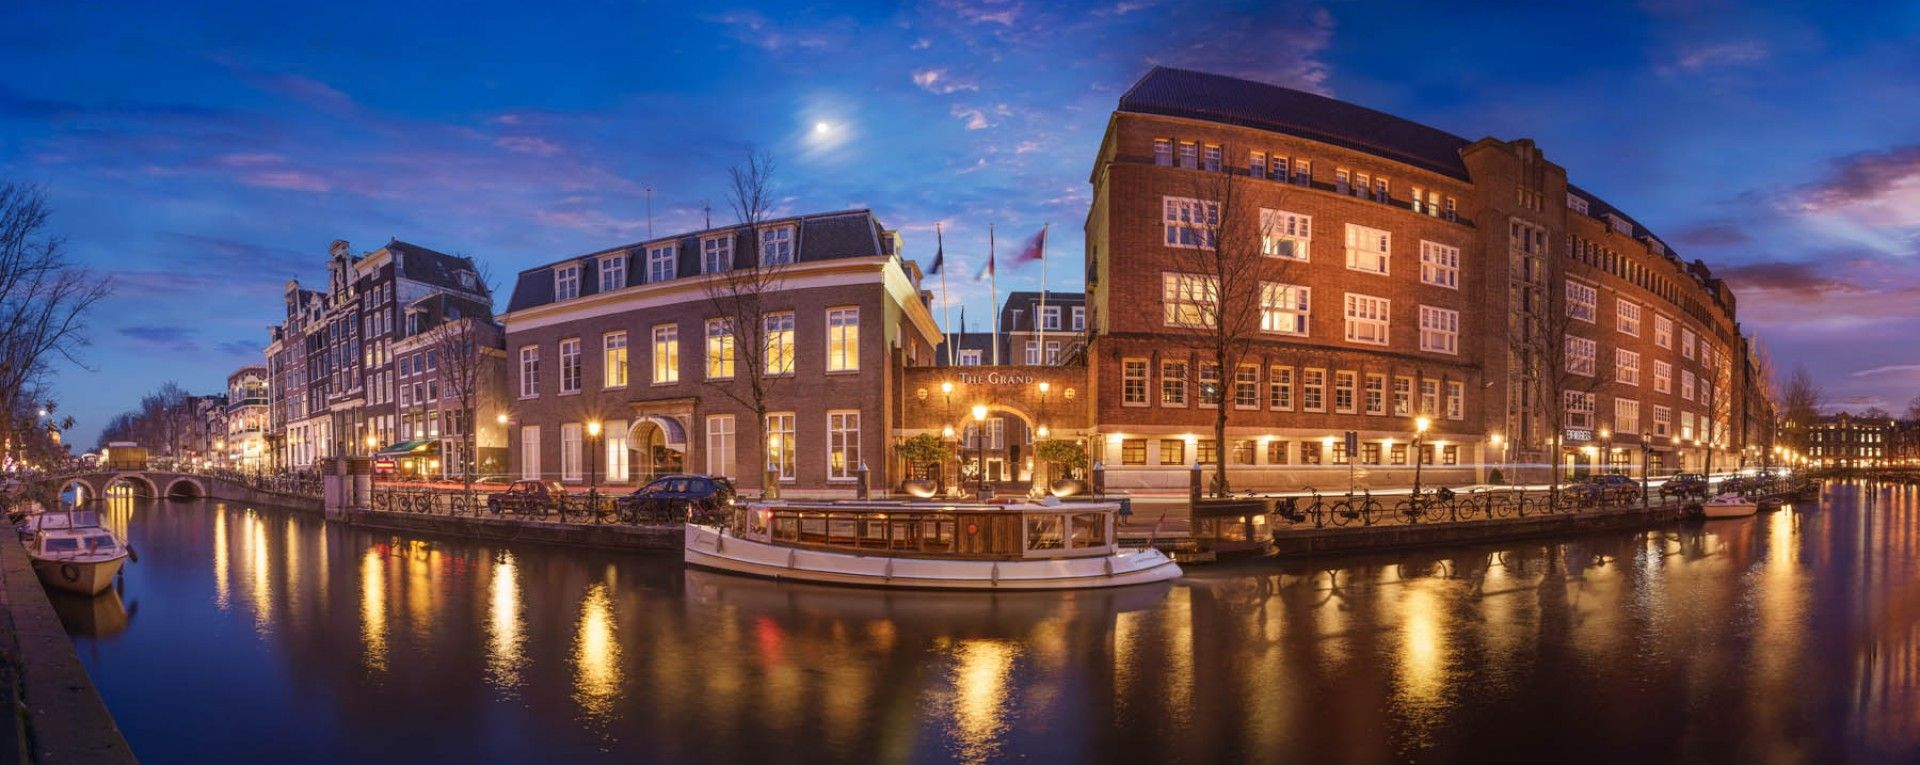 The grand amsterdam hotel amsterdam netherlands europe for Amsterdam hotel low cost centro